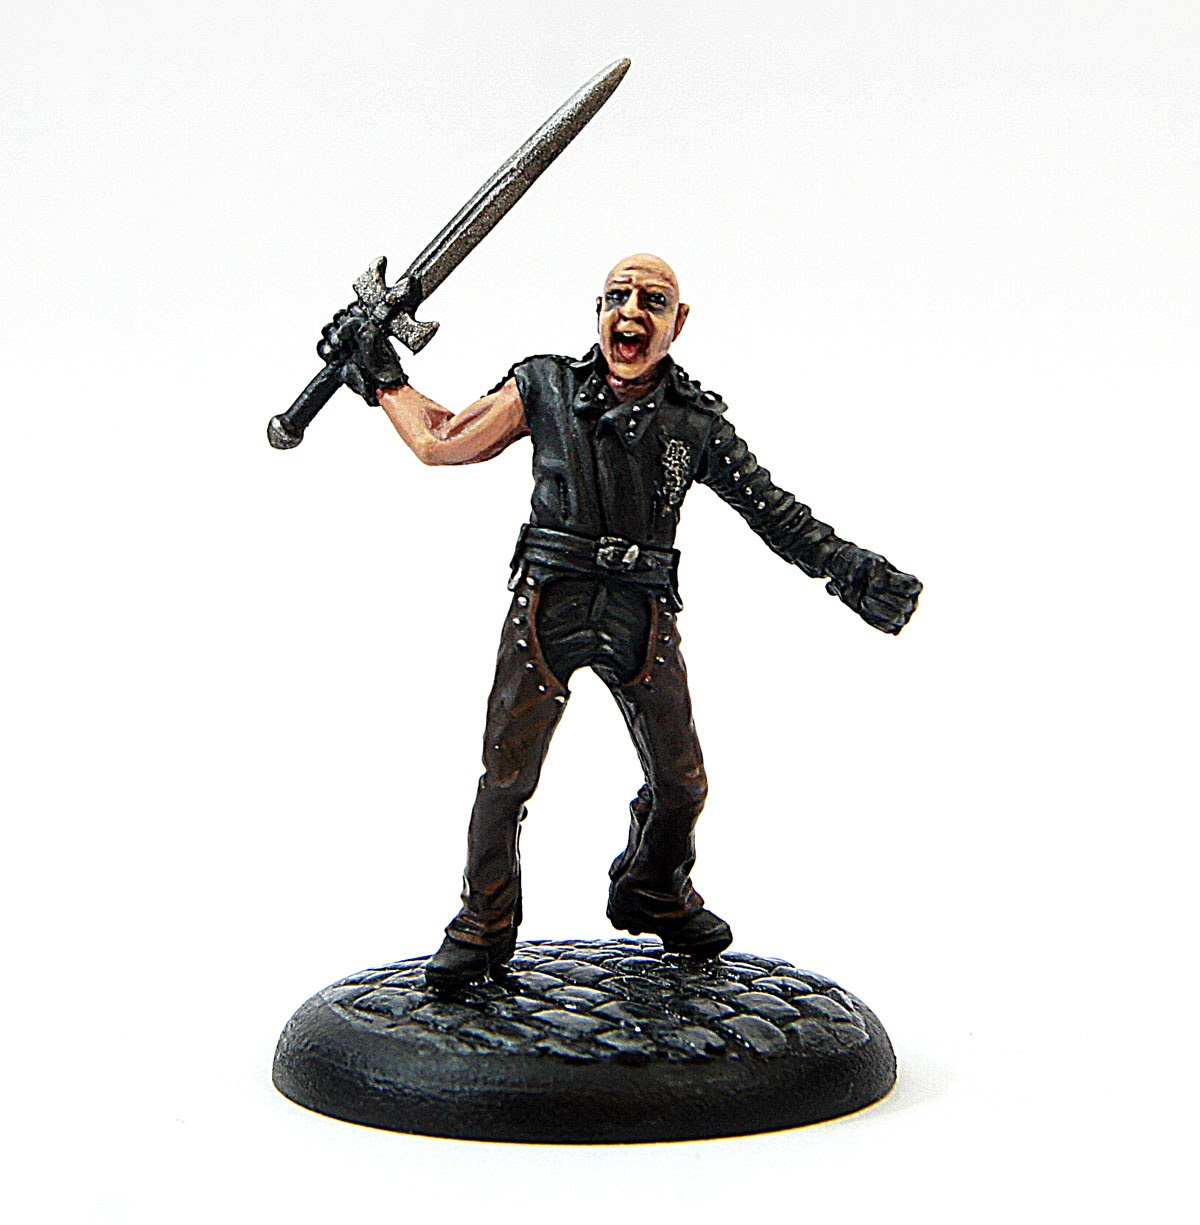 http://www.rogueminiatures.co.uk/media/catalog/product/cache/1/image/9df78eab33525d08d6e5fb8d27136e95/d/i/disguise_1.jpg